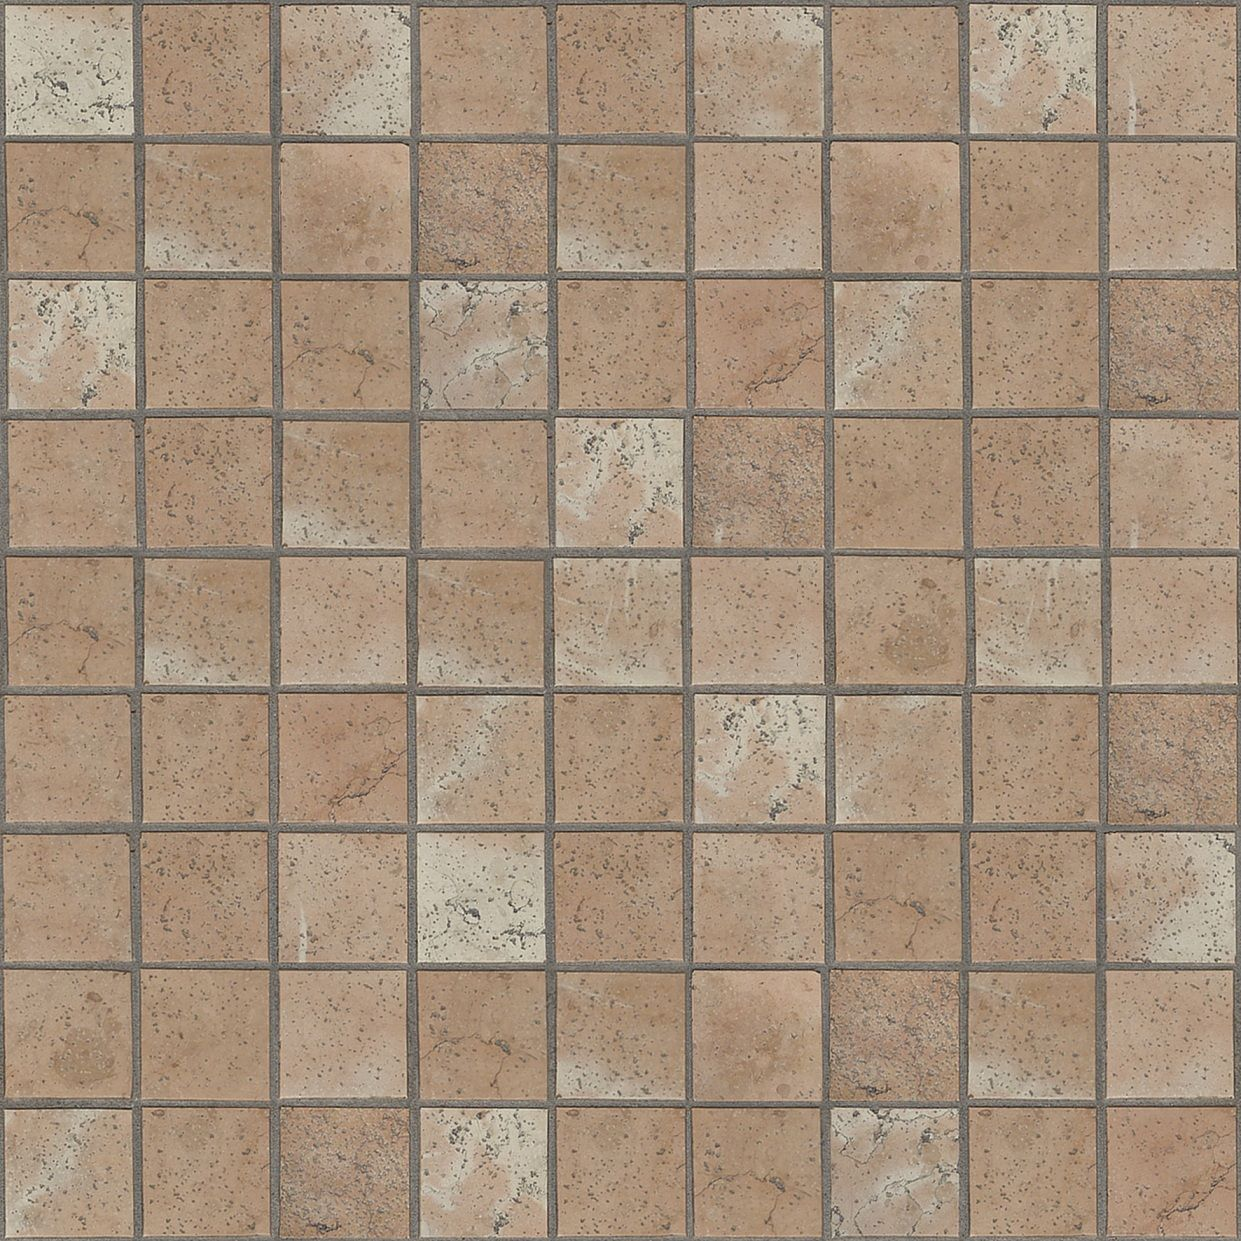 Bathroom Floor Tile Texture Seamless Tiles Texture Tile Floor Ceramic Tile Bathrooms